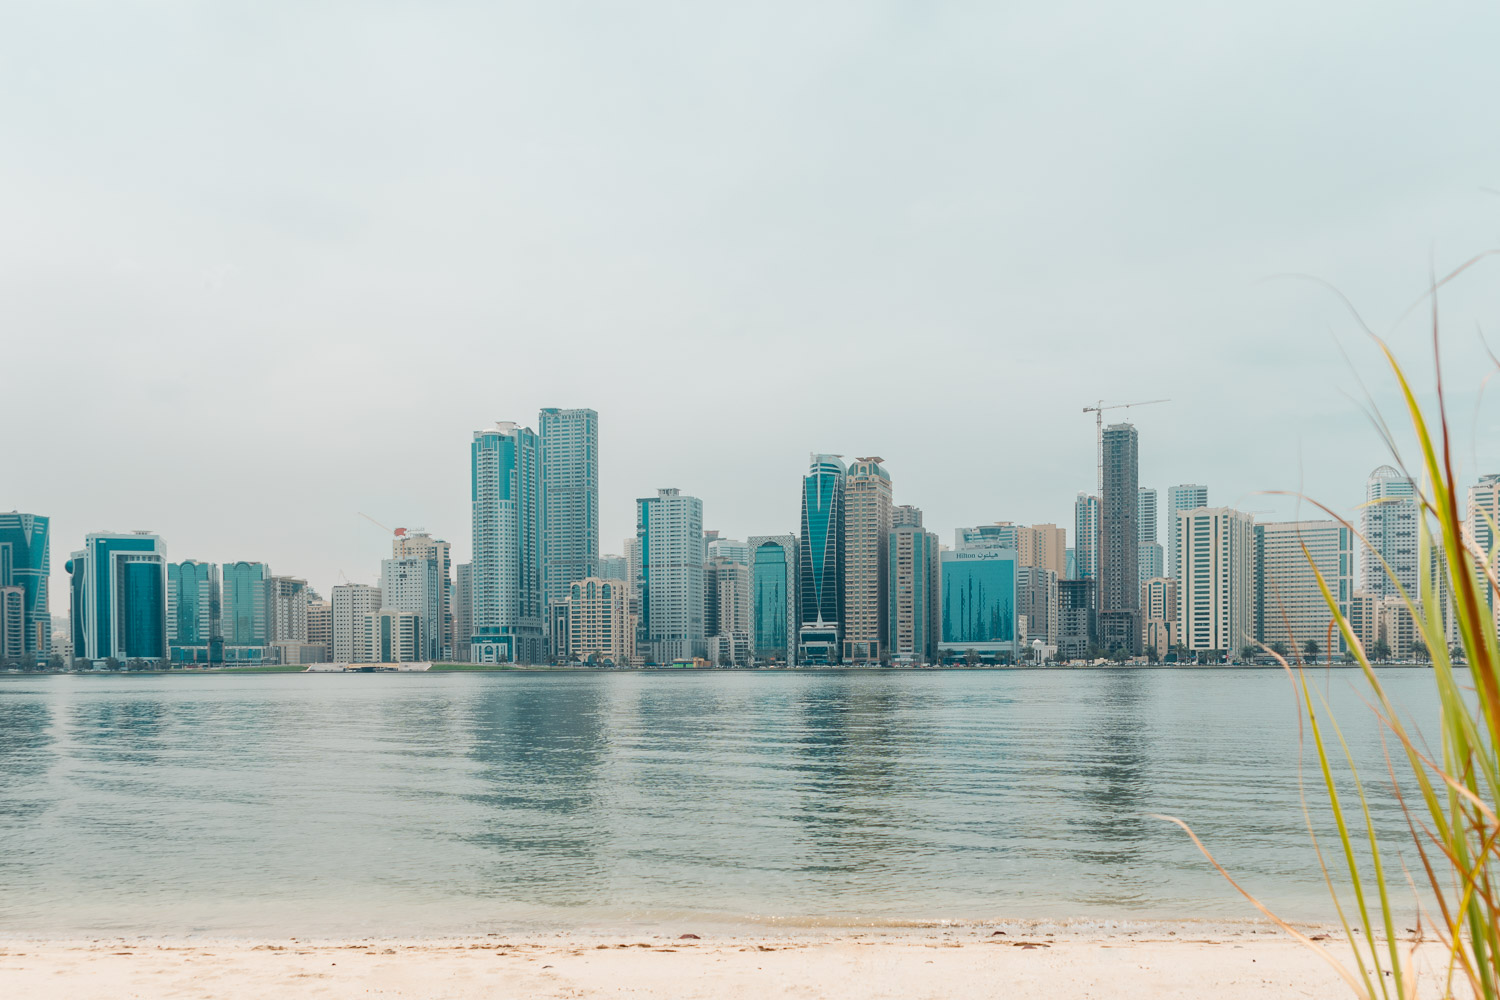 Sharjah's coastline seen from Al Noor Island